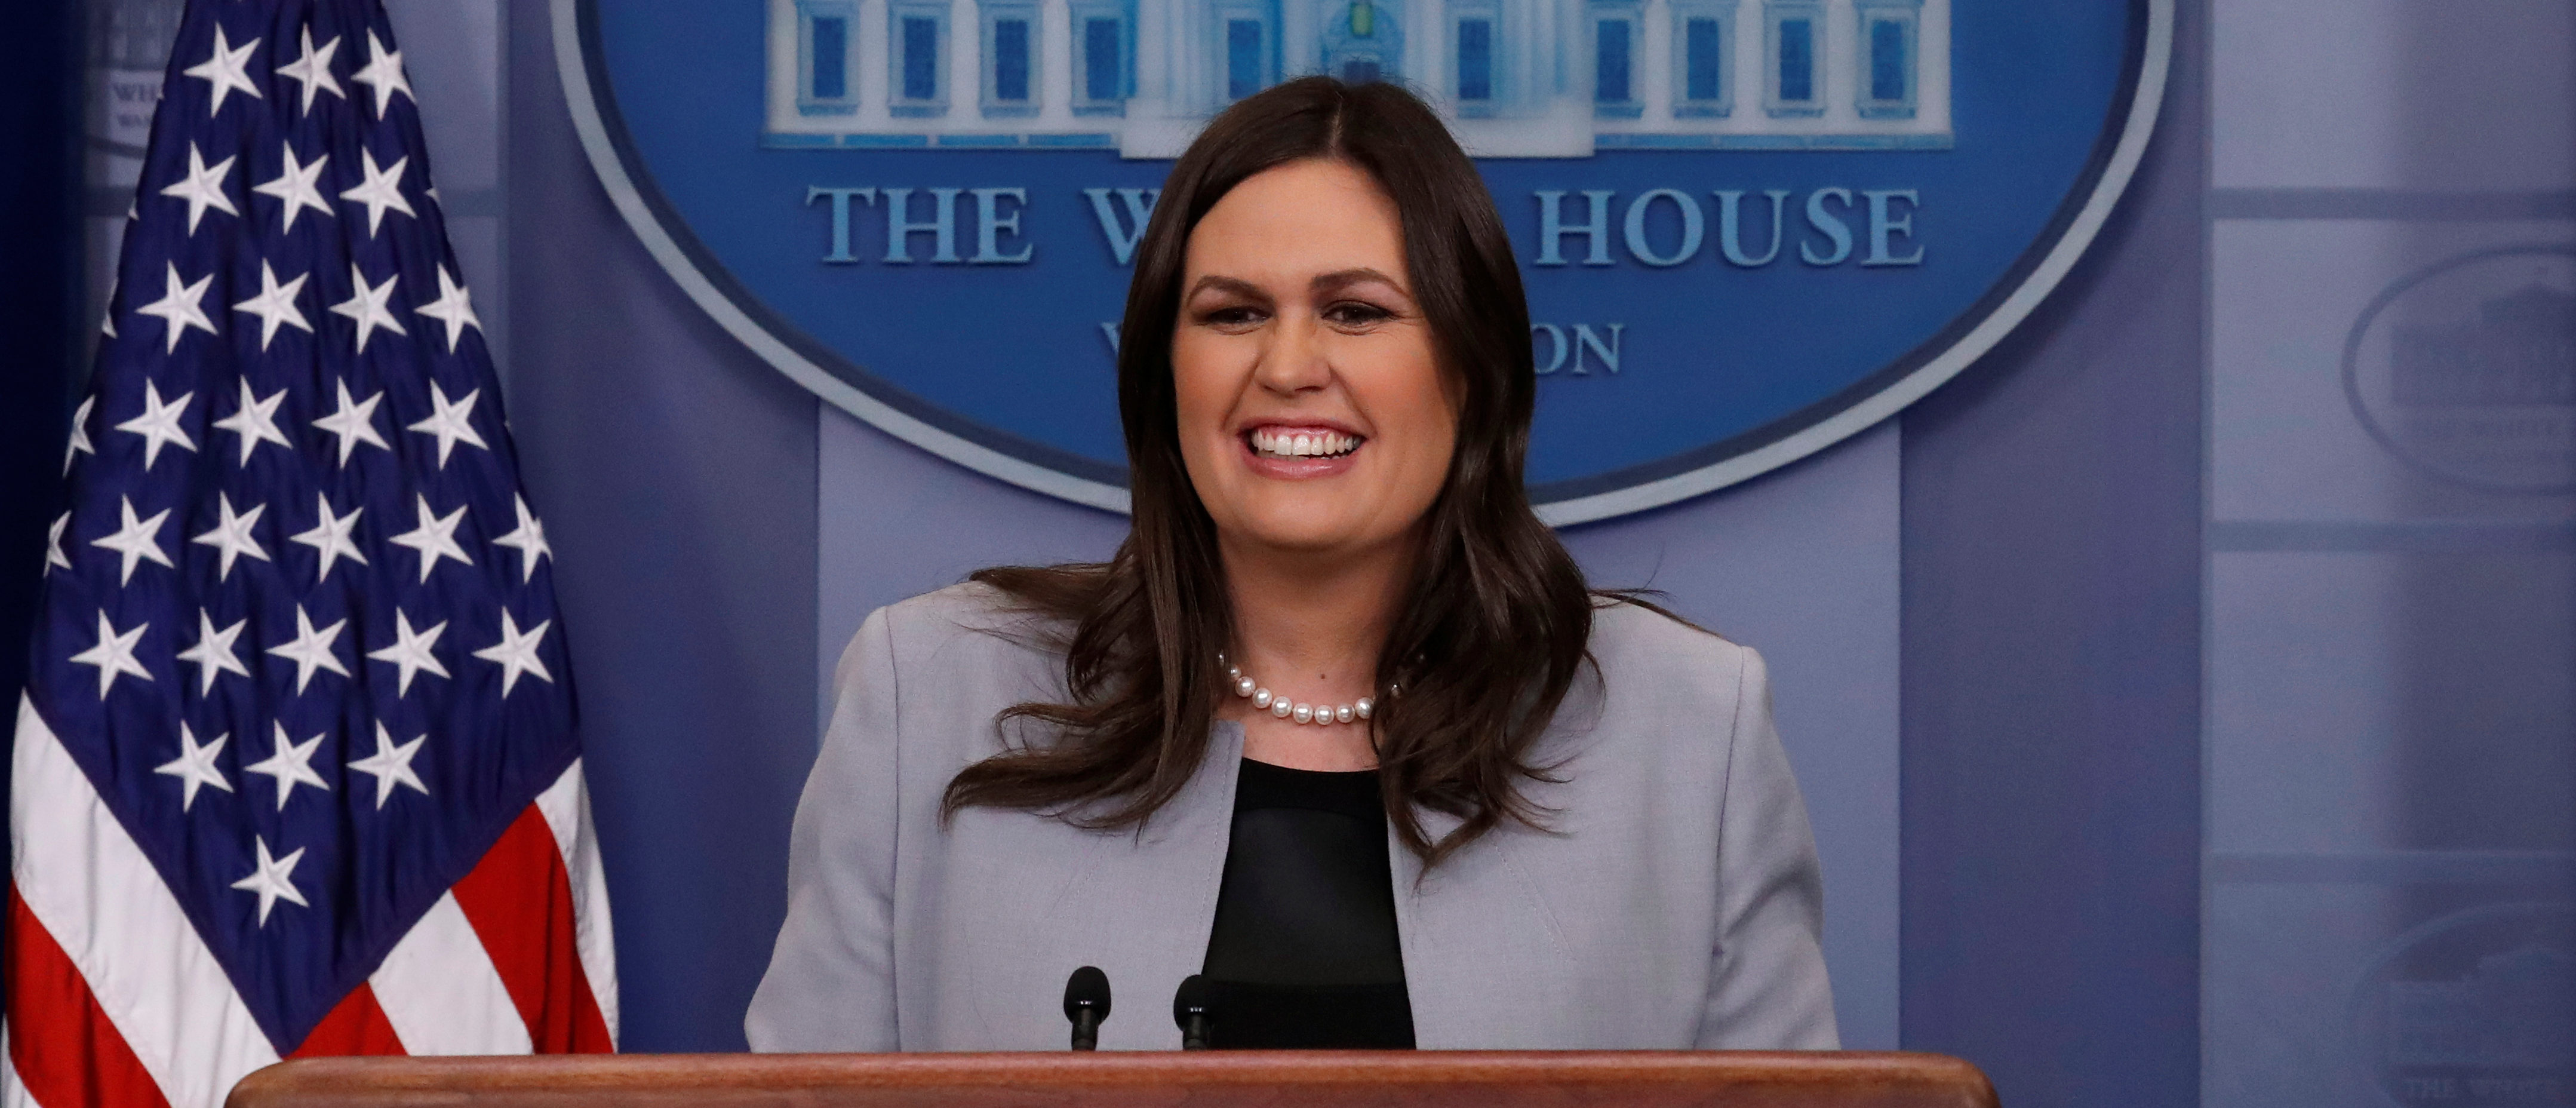 'I Love My Job' — Sarah Sanders Slams Reports Of Her Leaving The WH